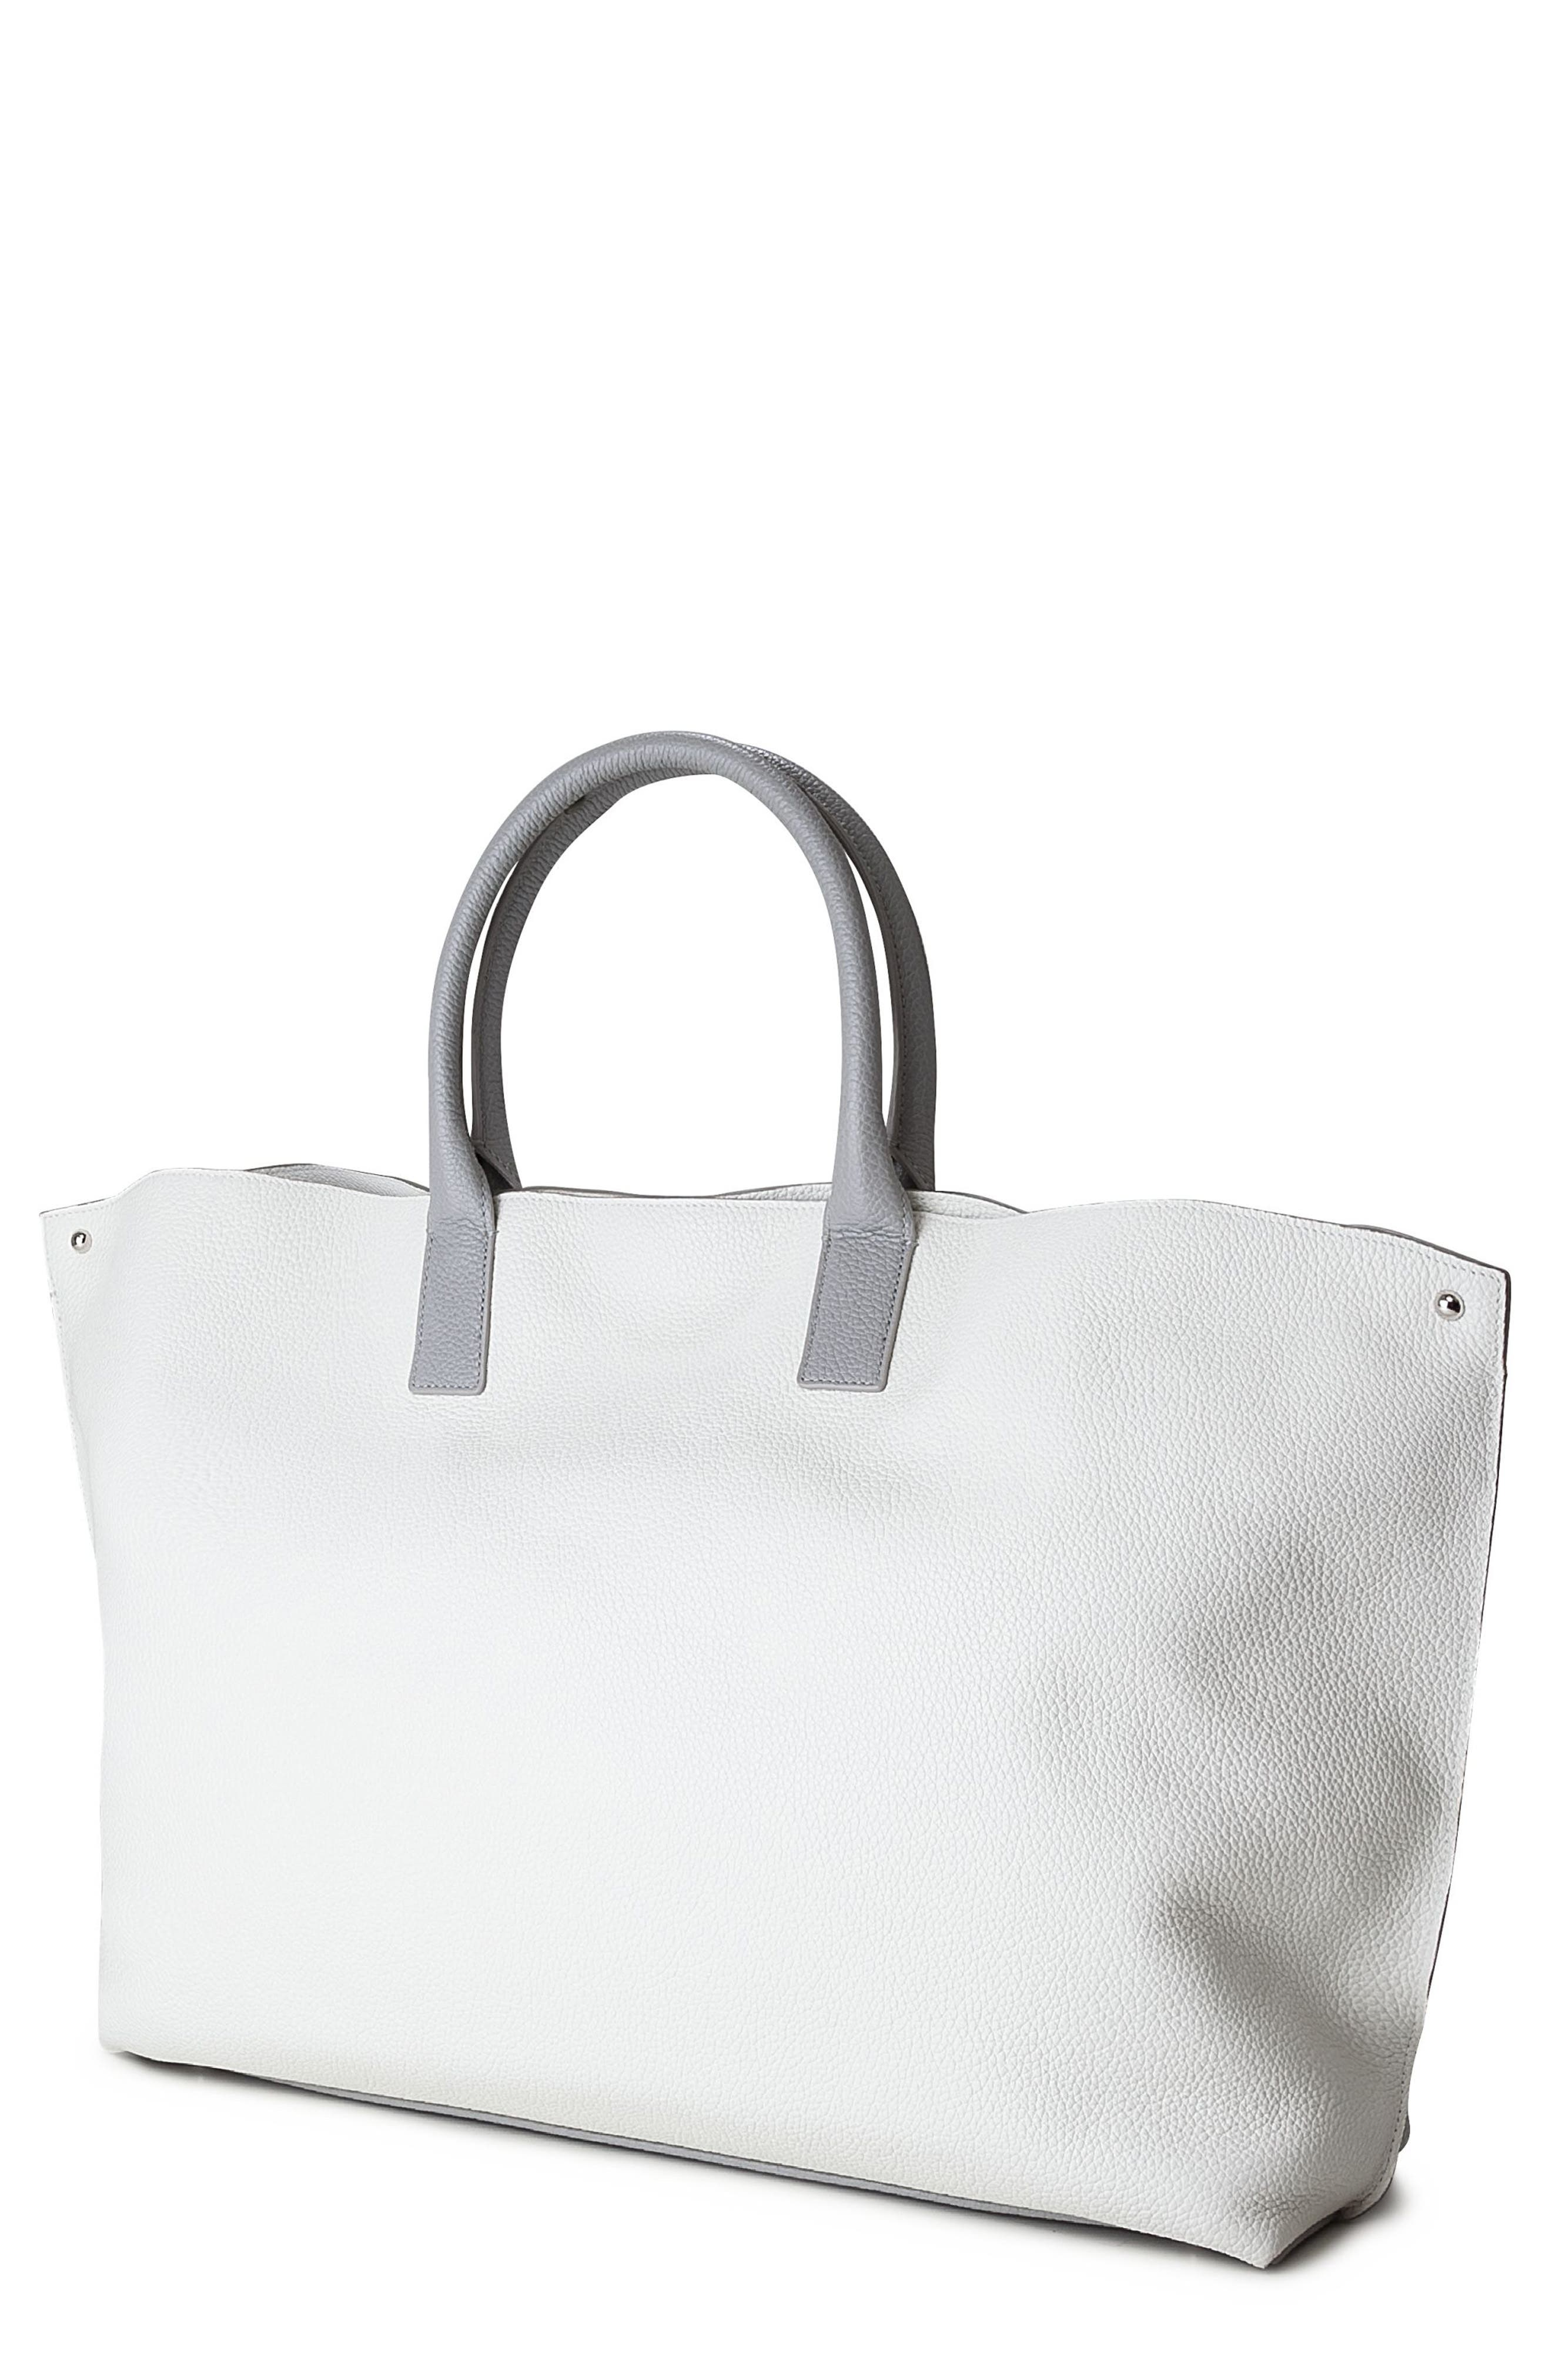 Alternate Image 1 Selected - Akris 'AI Medium Messenger' Tricolor Leather Tote